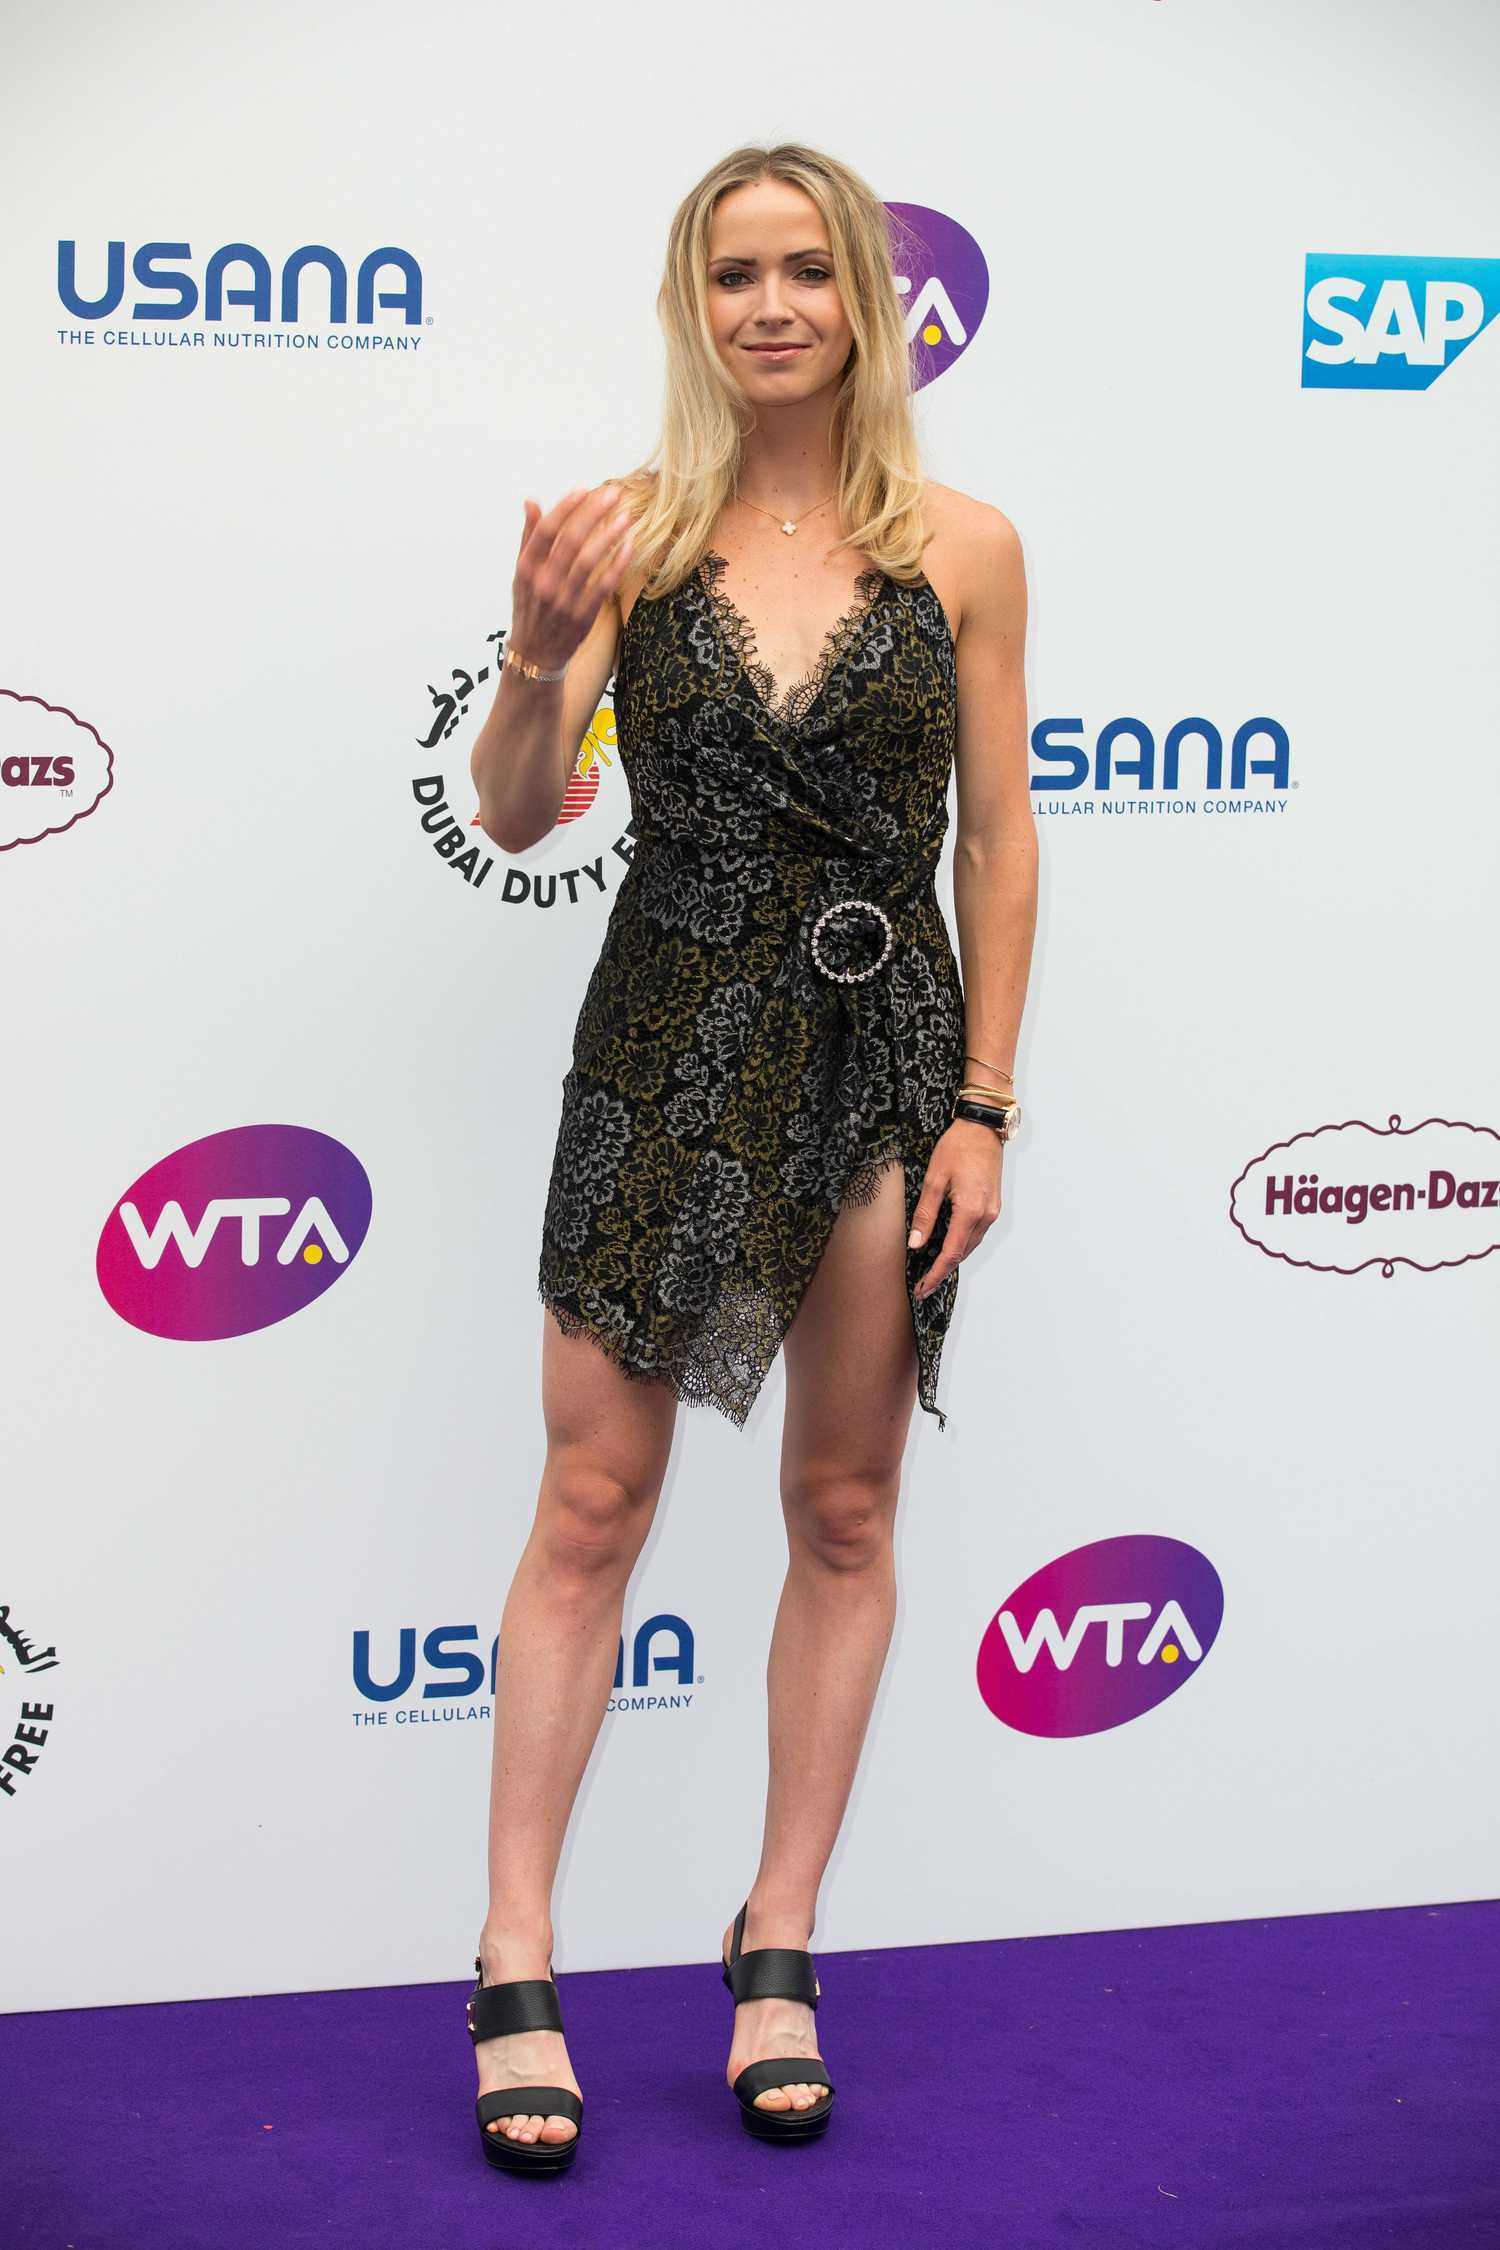 Elina Svitolina Attends the WTA Tennis on the Thames